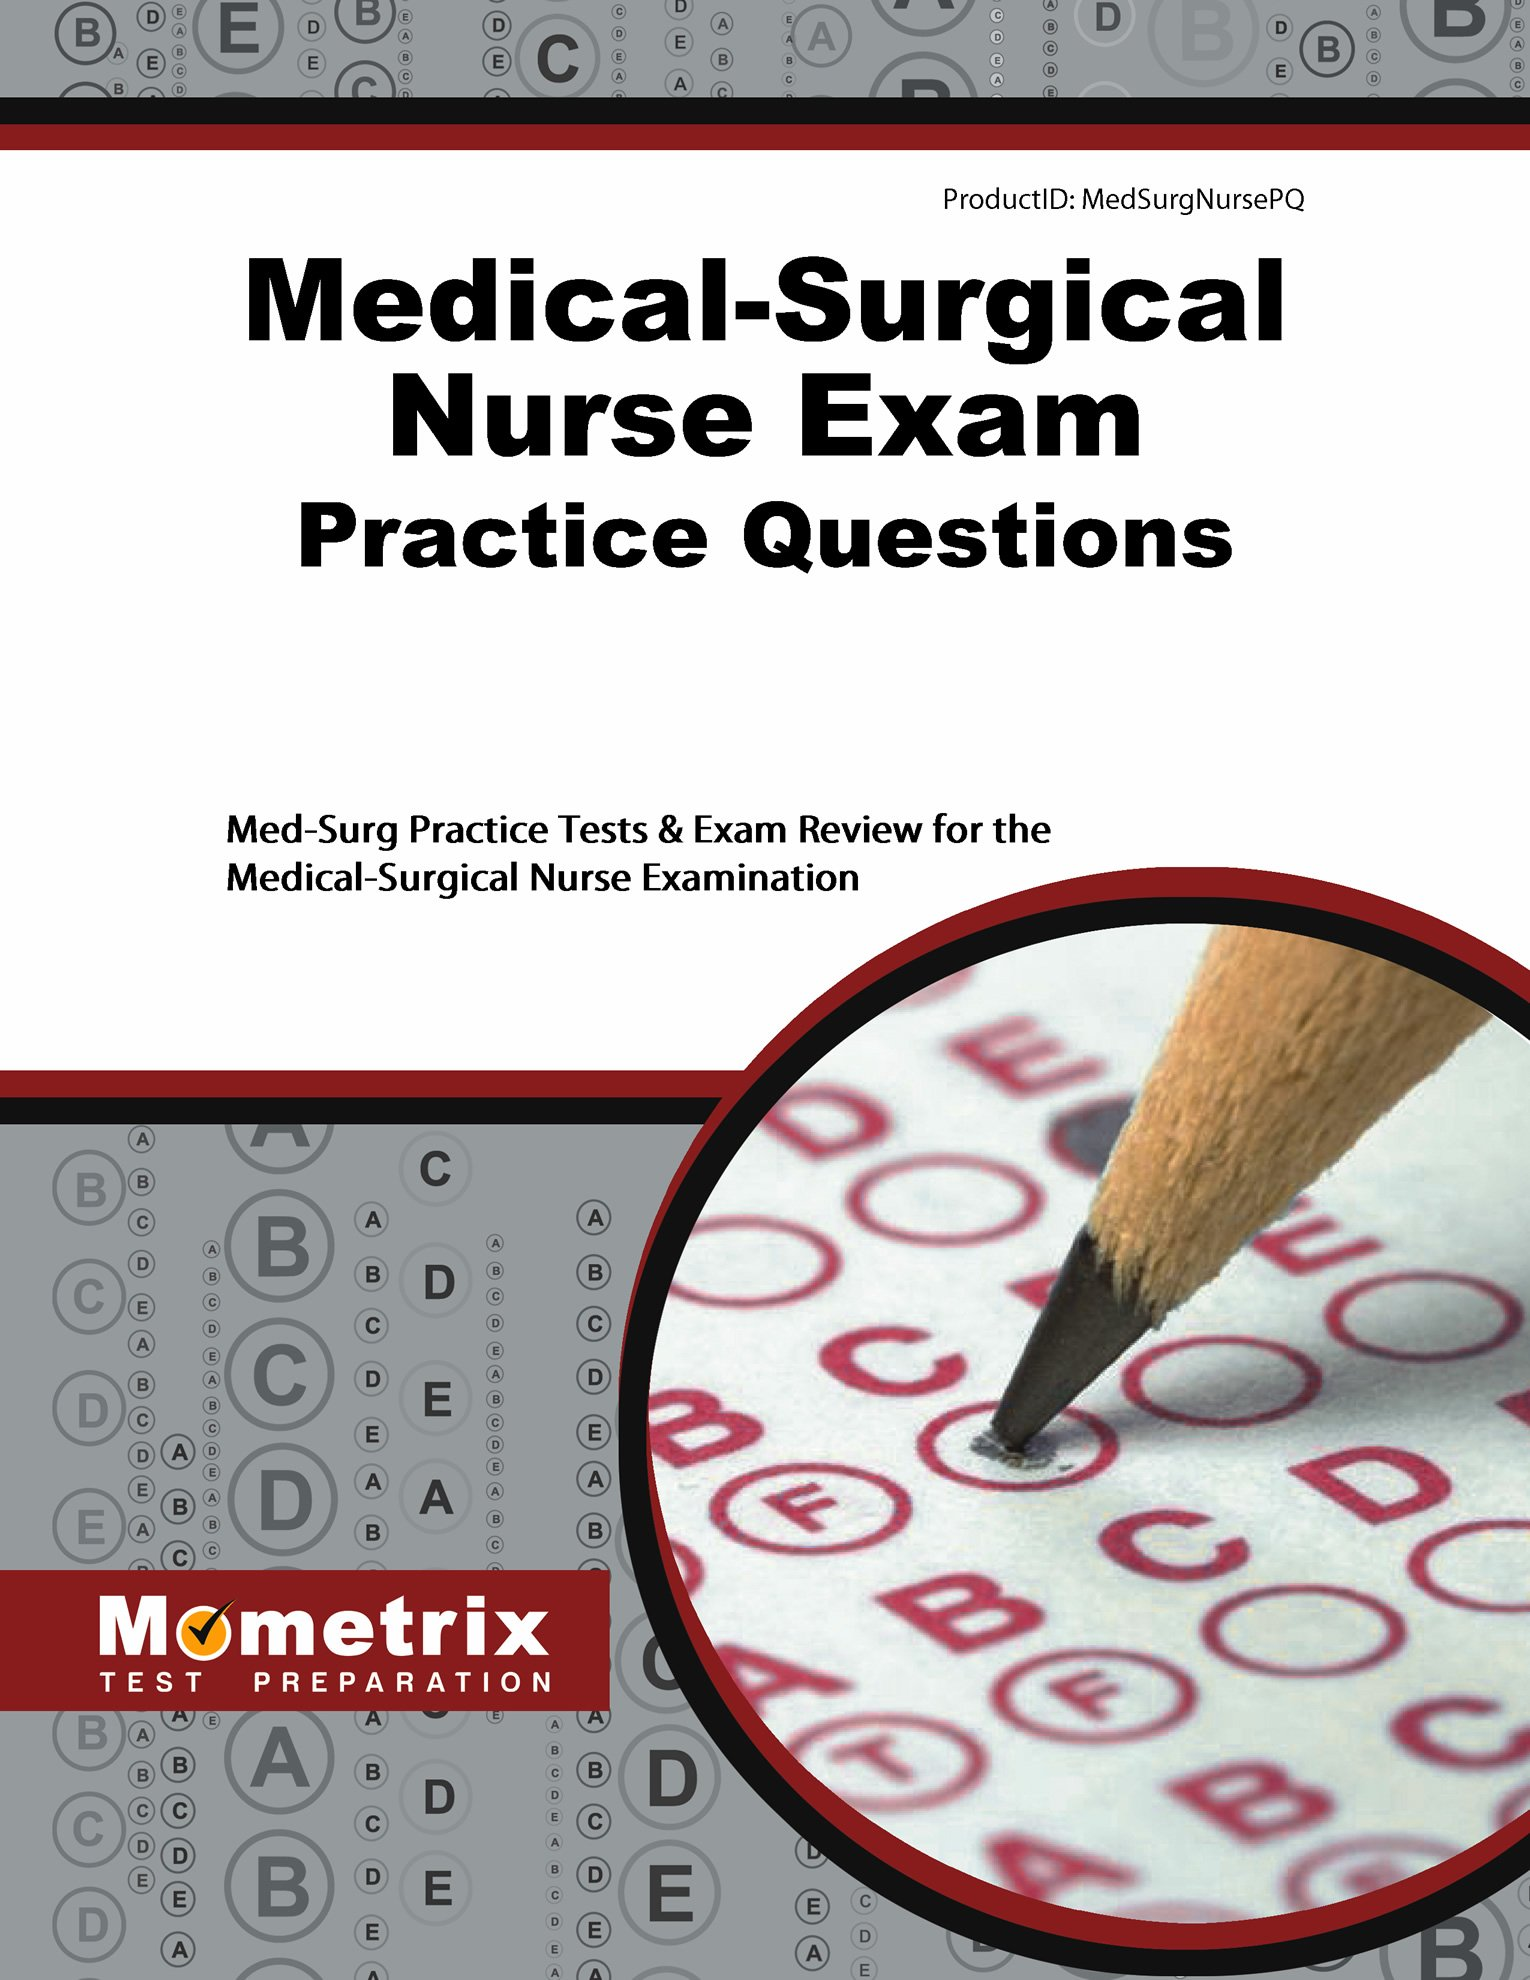 Medical-Surgical Nurse Exam Practice Questions: Med-Surg Practice Tests & Exam Review for the Medical-Surgical Nurse Examination by Mometrix Media LLC